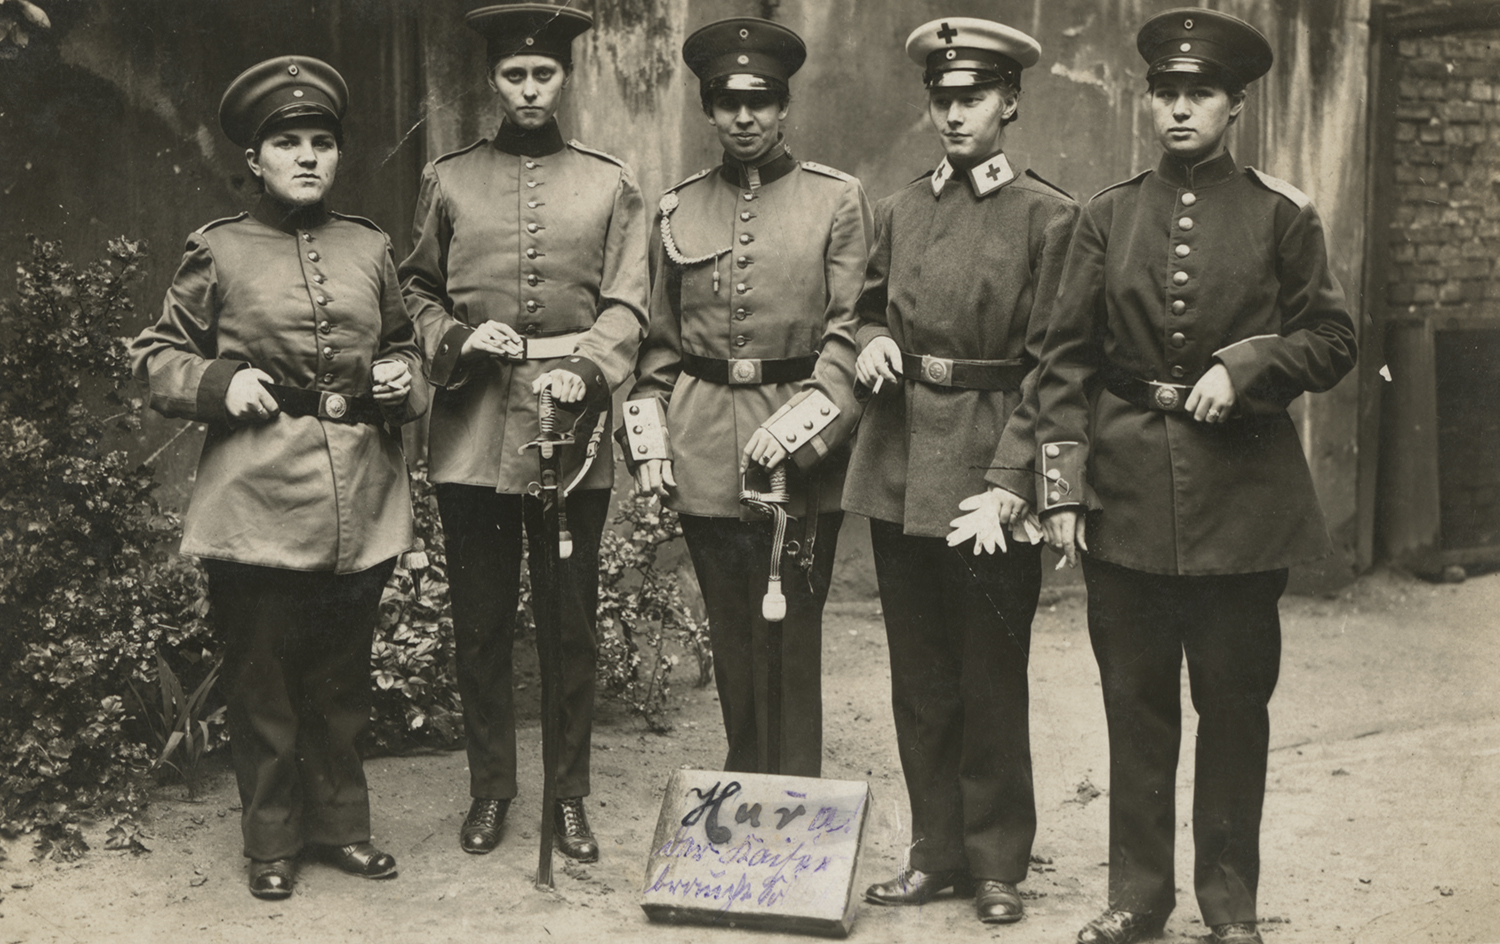 Women dressed in mens military uniforms. 1915